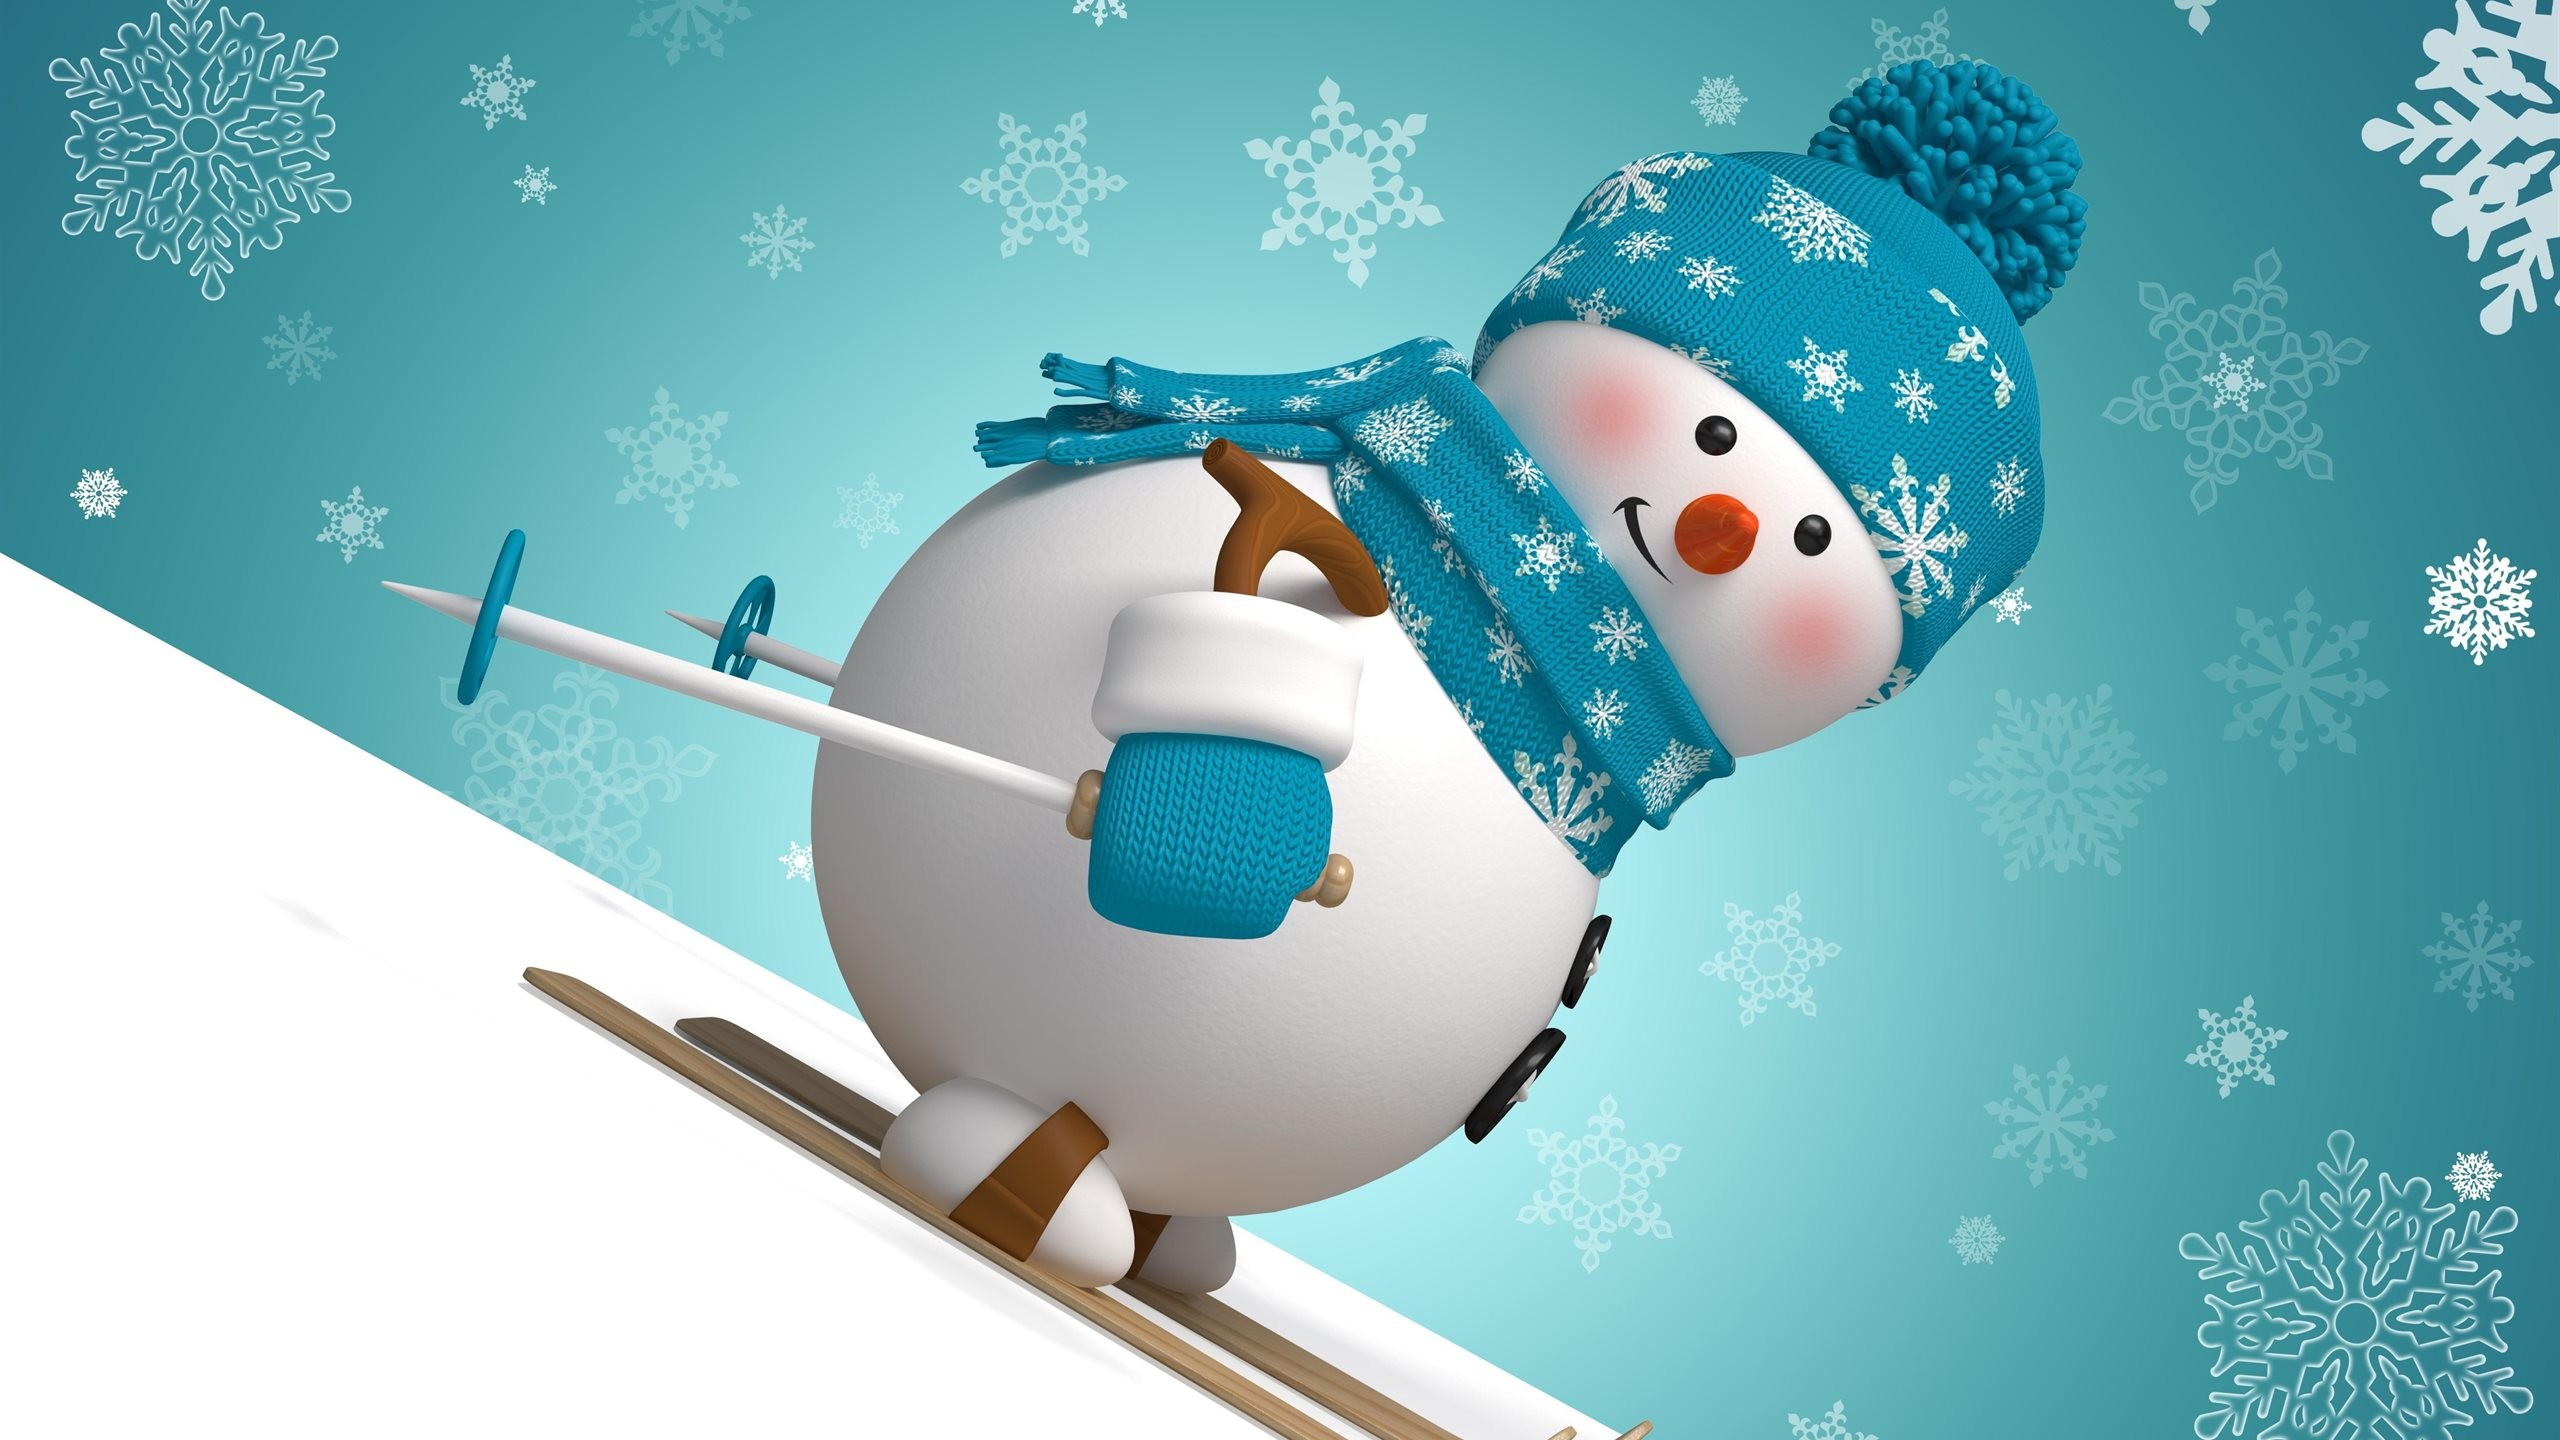 2560x1440 Snowman Wallpapers | HD Wallpapers Pulse Winter Snowman Wallpapers -  Wallpaper Cave ...